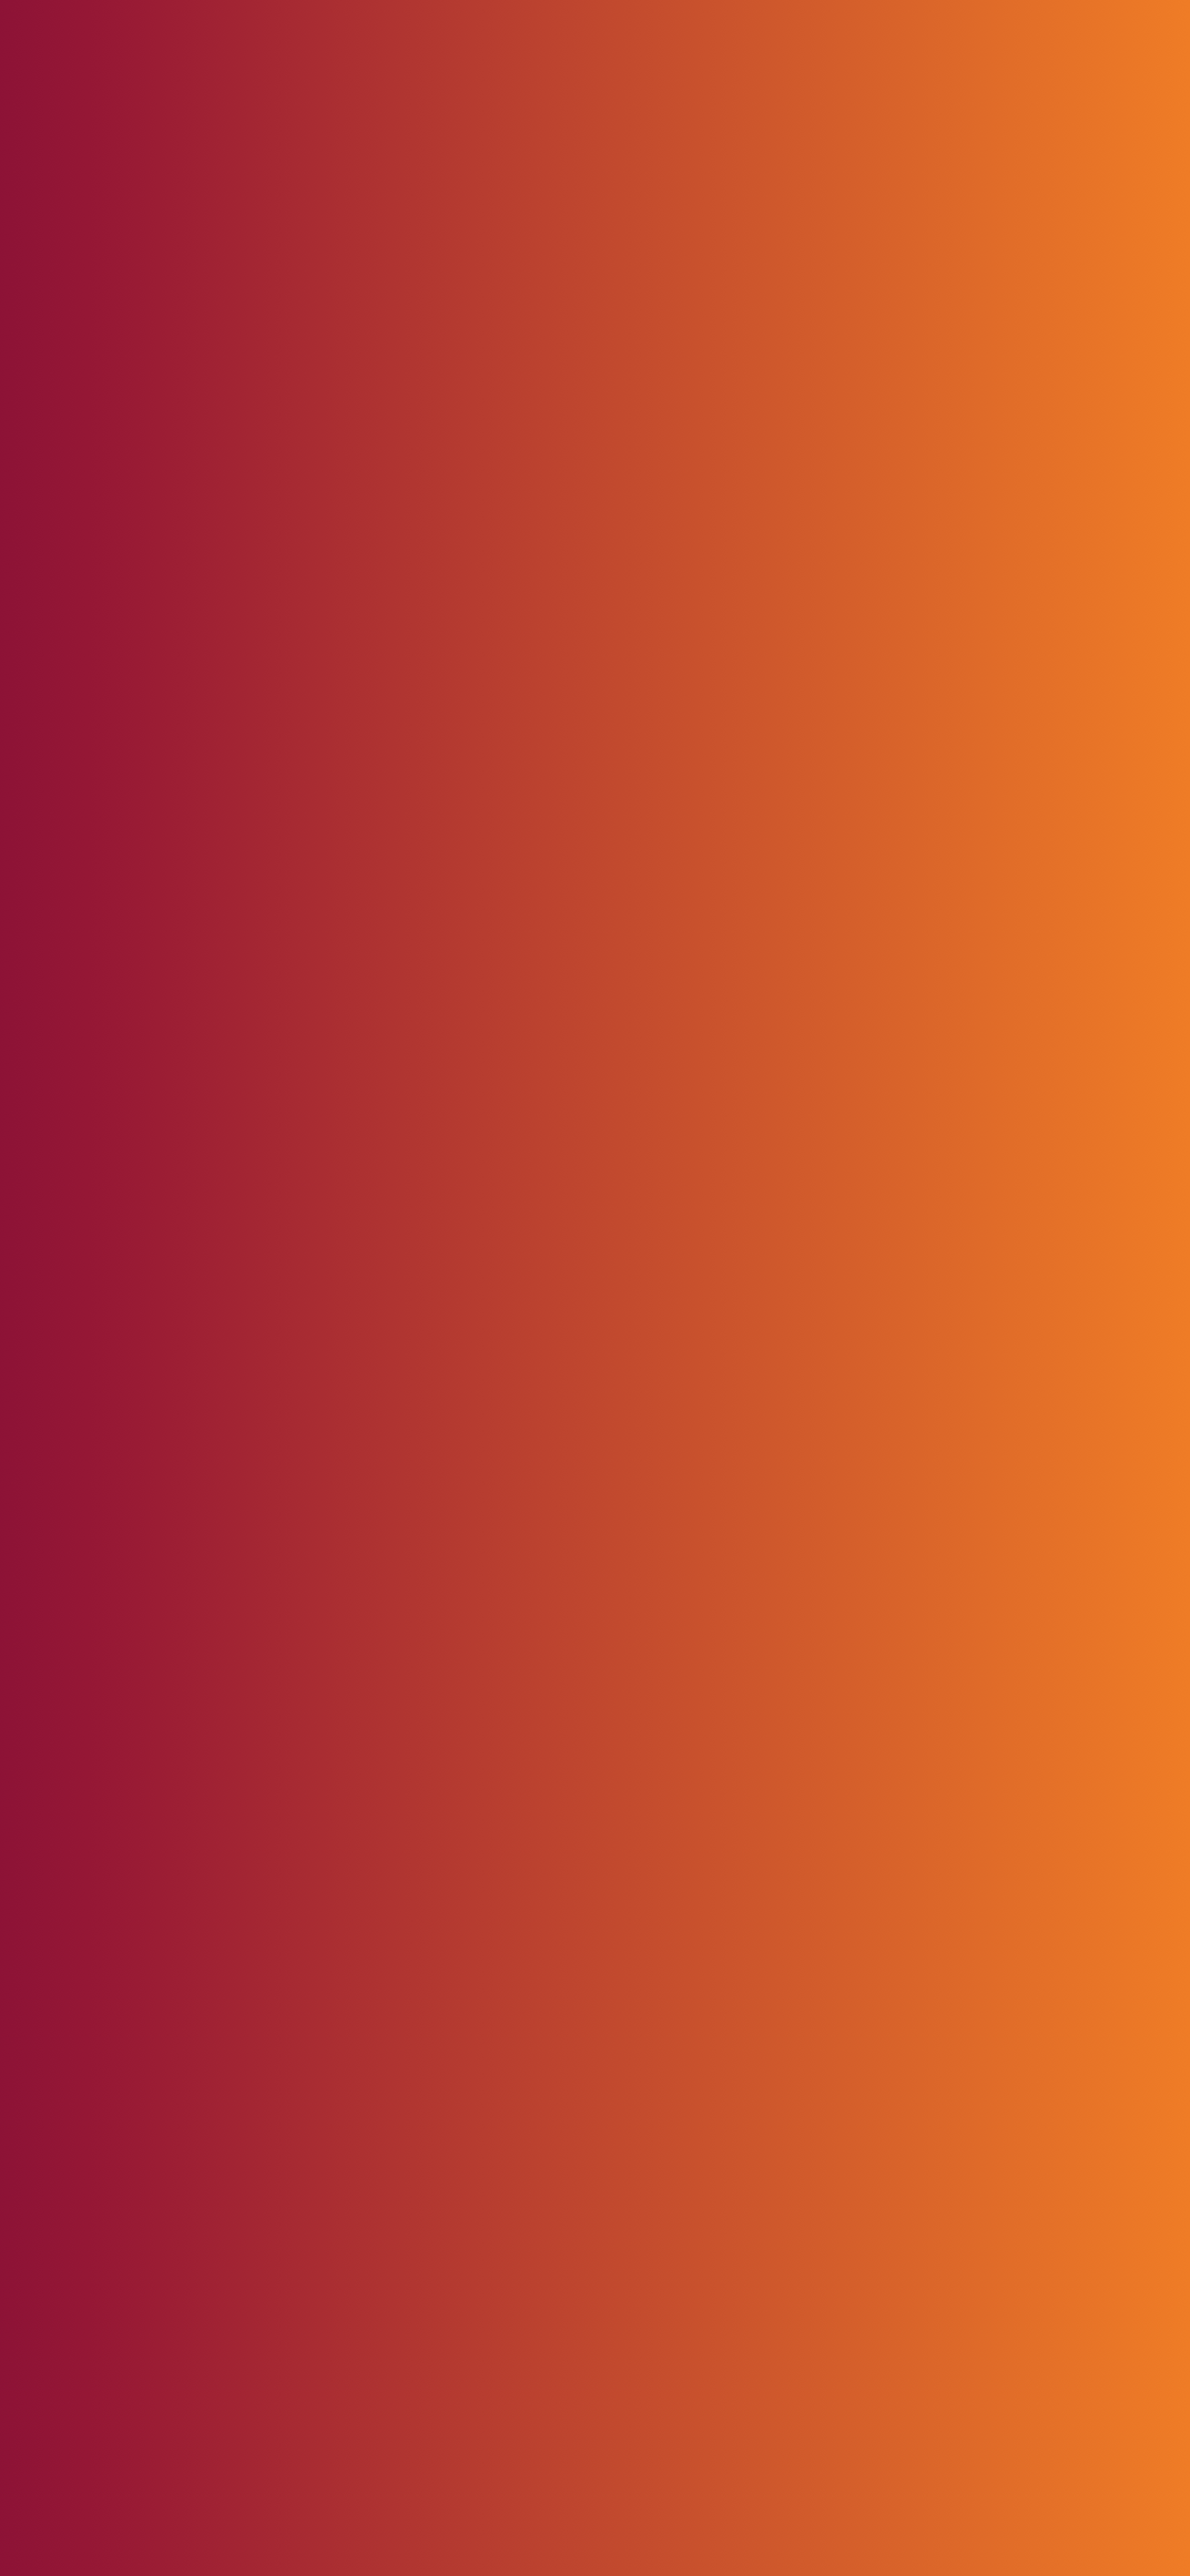 Gradient Orange By Ar72014 On Twitter Free Background Images Wallpaper Islamic Wallpaper